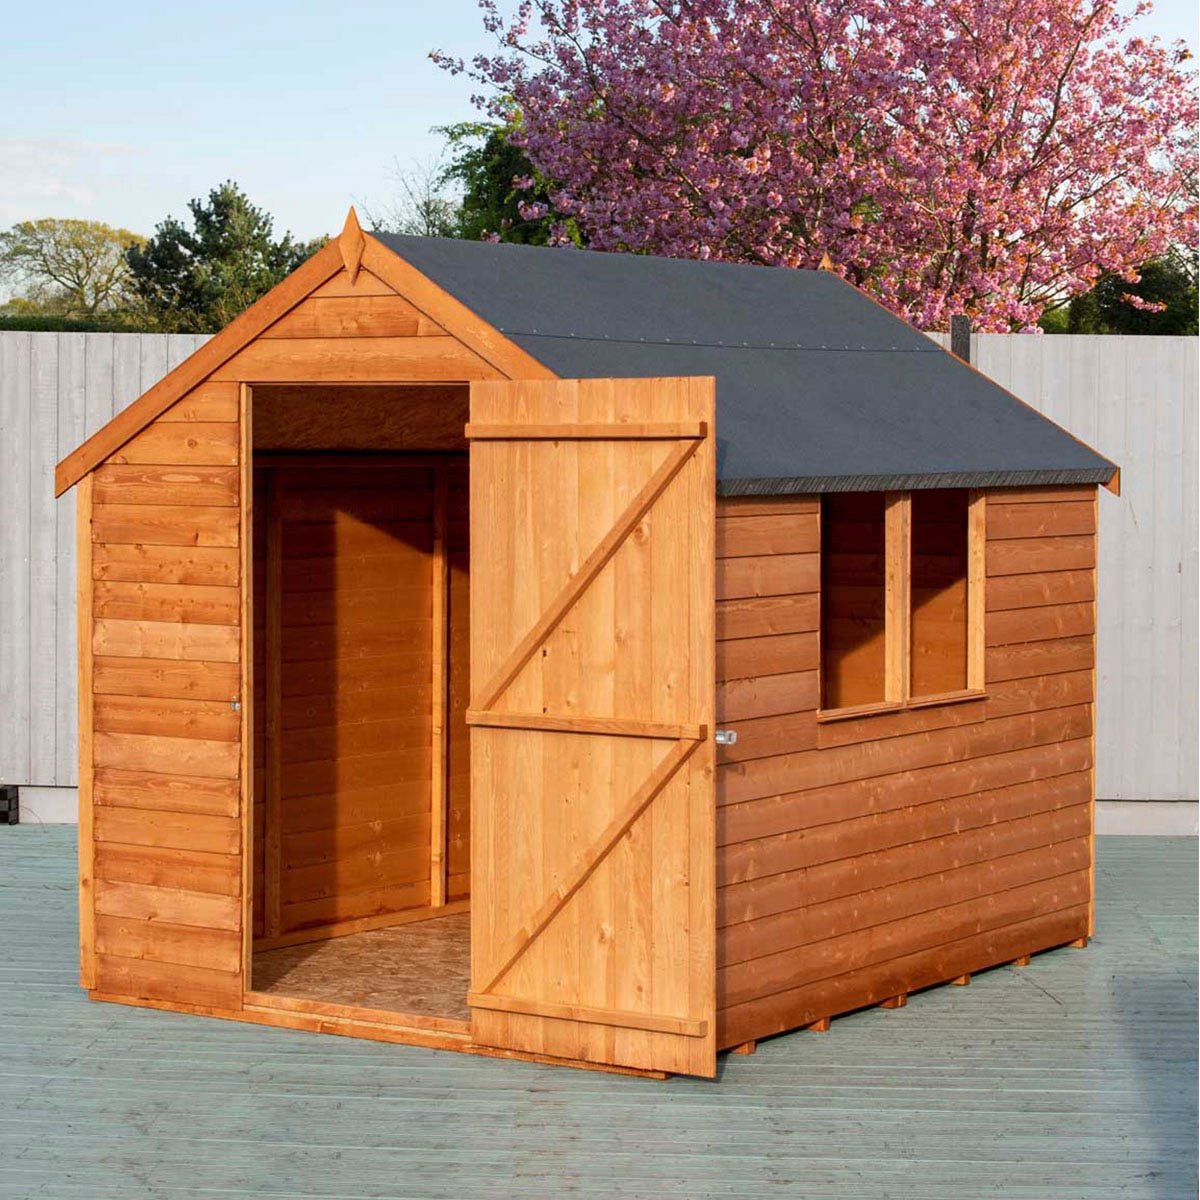 Shire Overlap 8' x 6' Value shed with Window